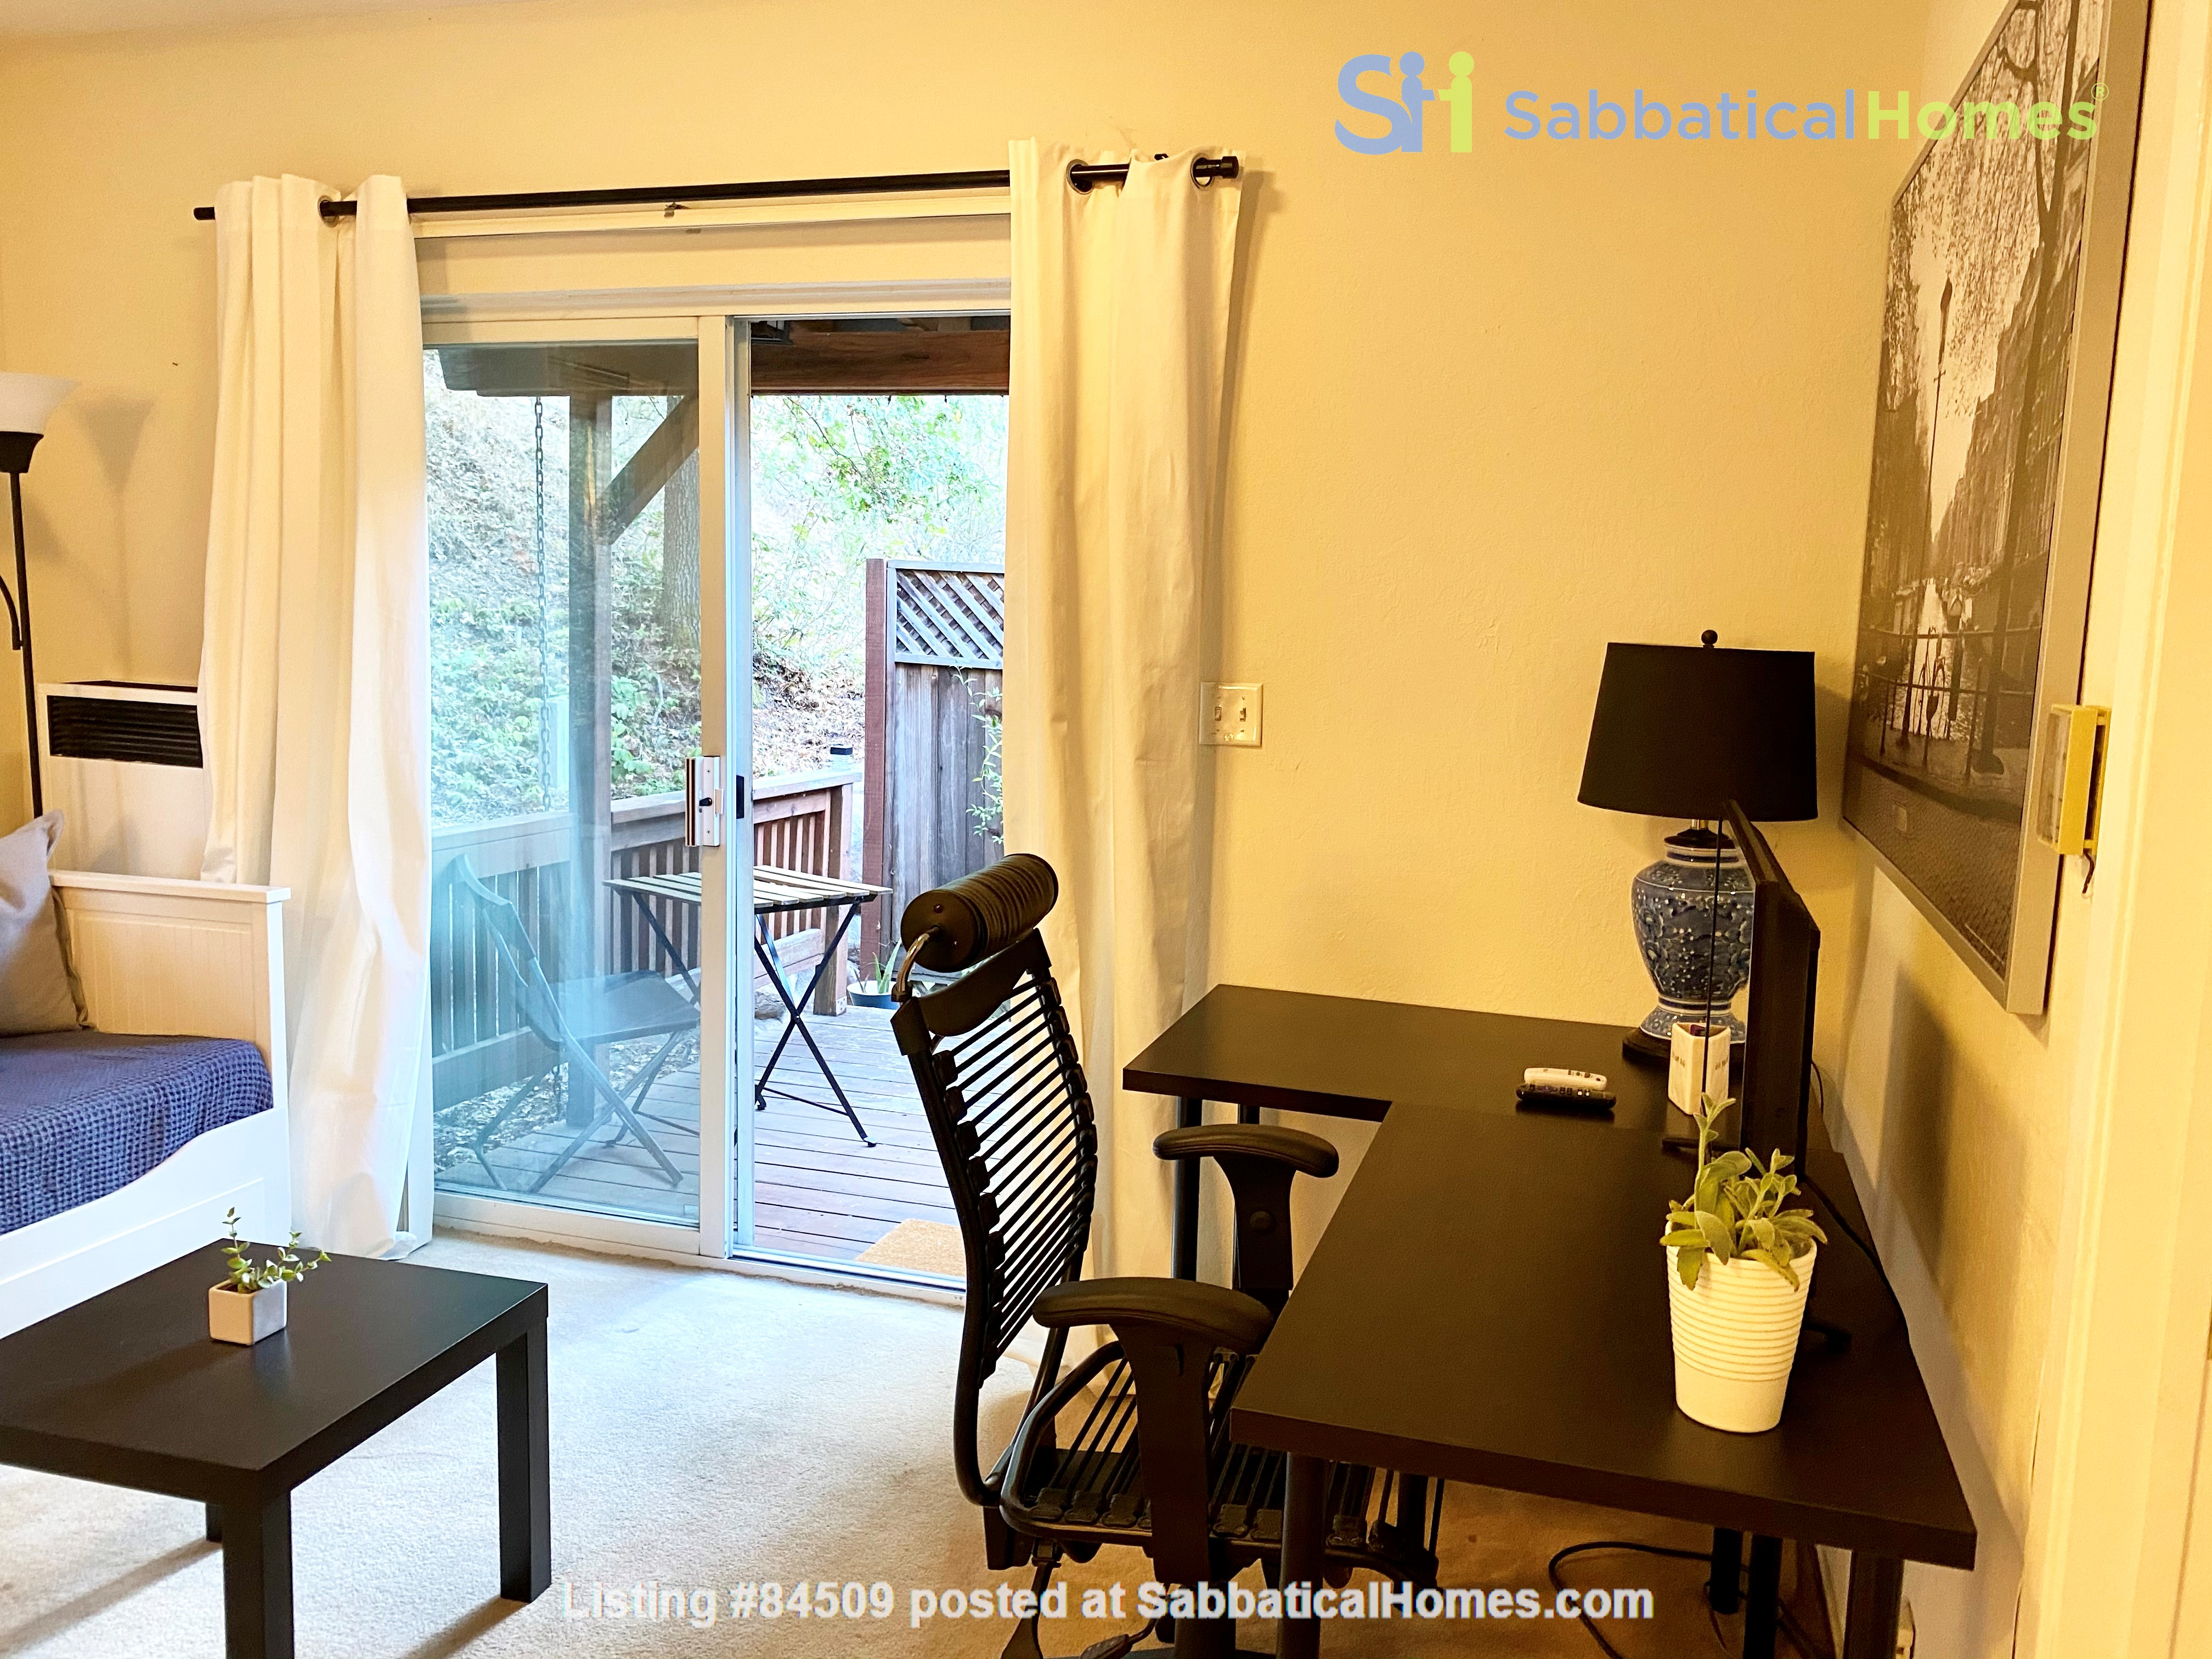 Charming, fully furnished 1BR apartment in Orinda Home Rental in Orinda, California, United States 6